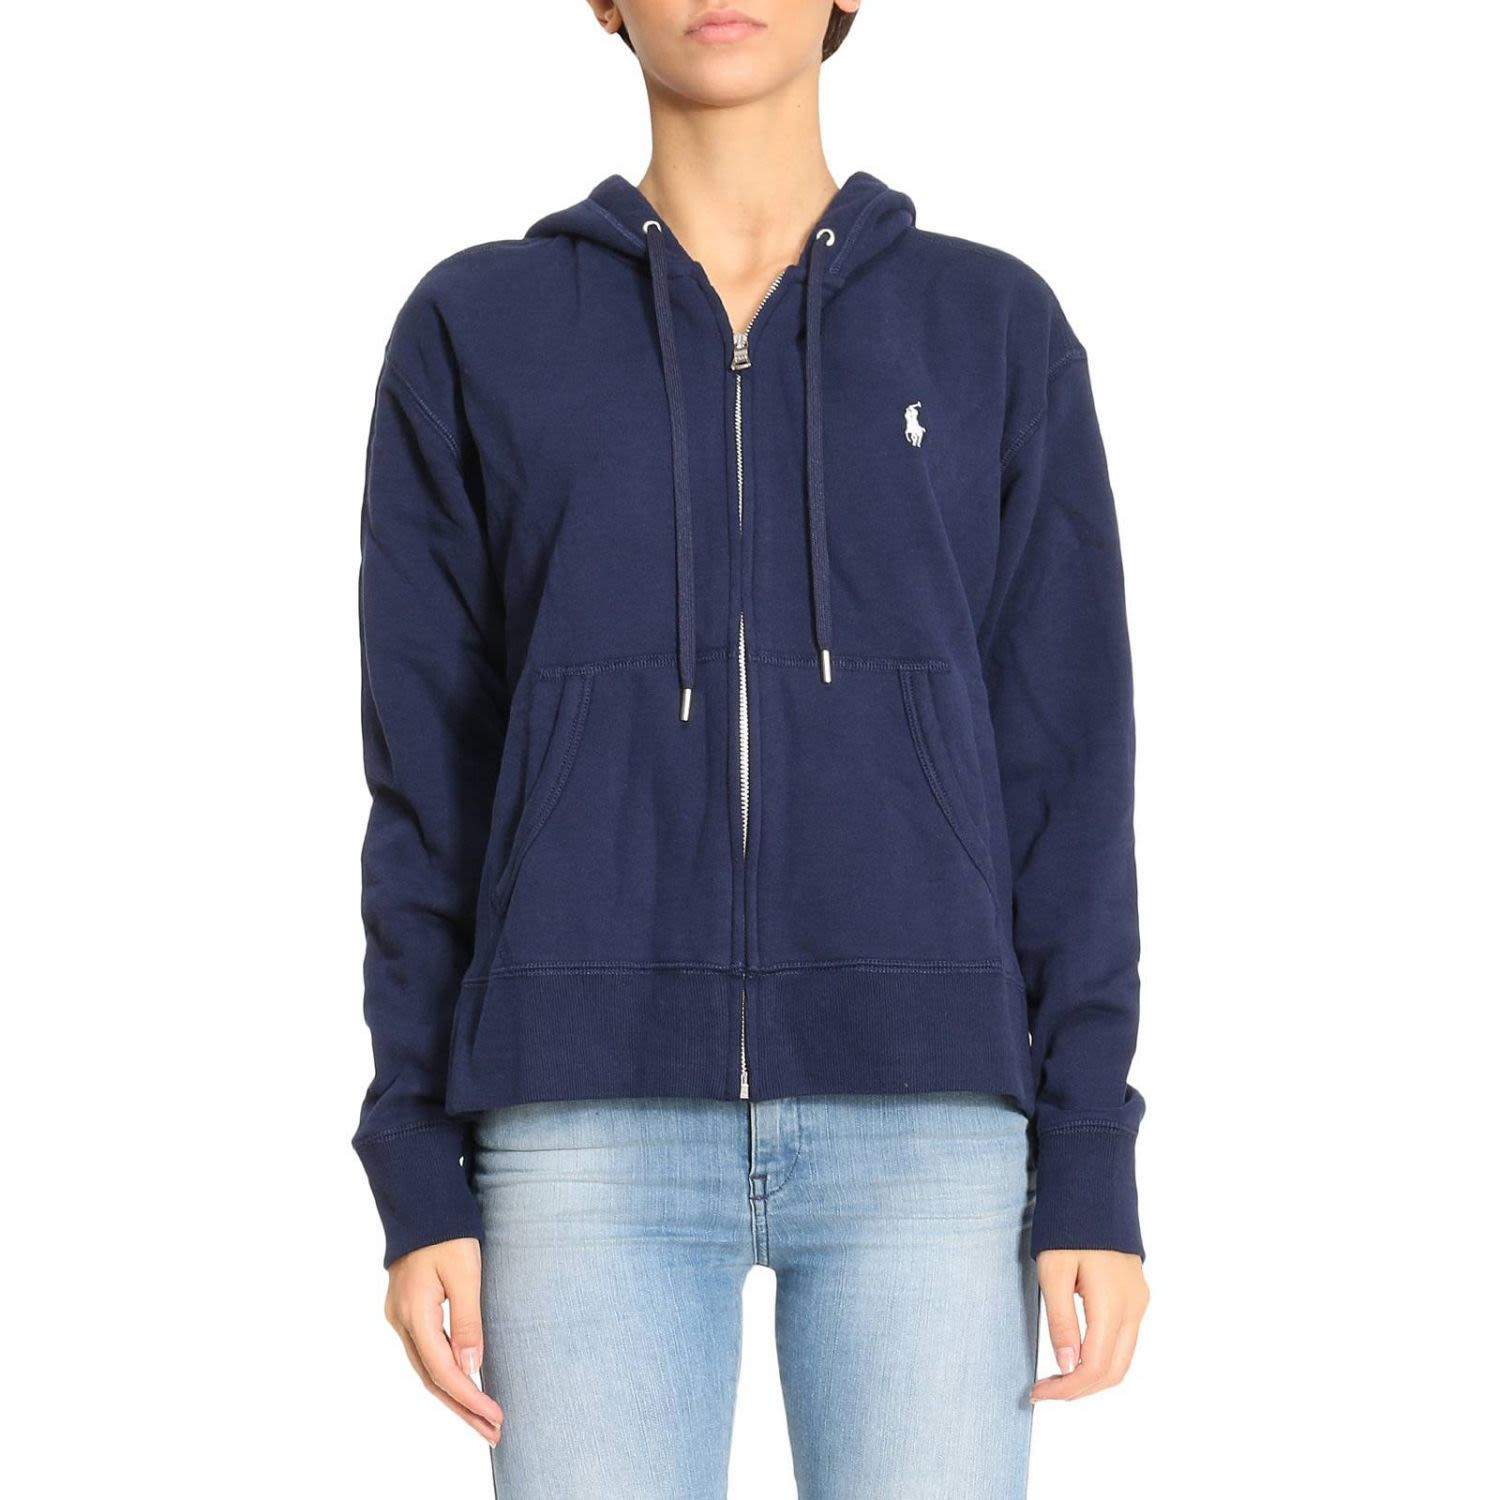 Sweatshirt Sweater Women Polo Ralph Lauren